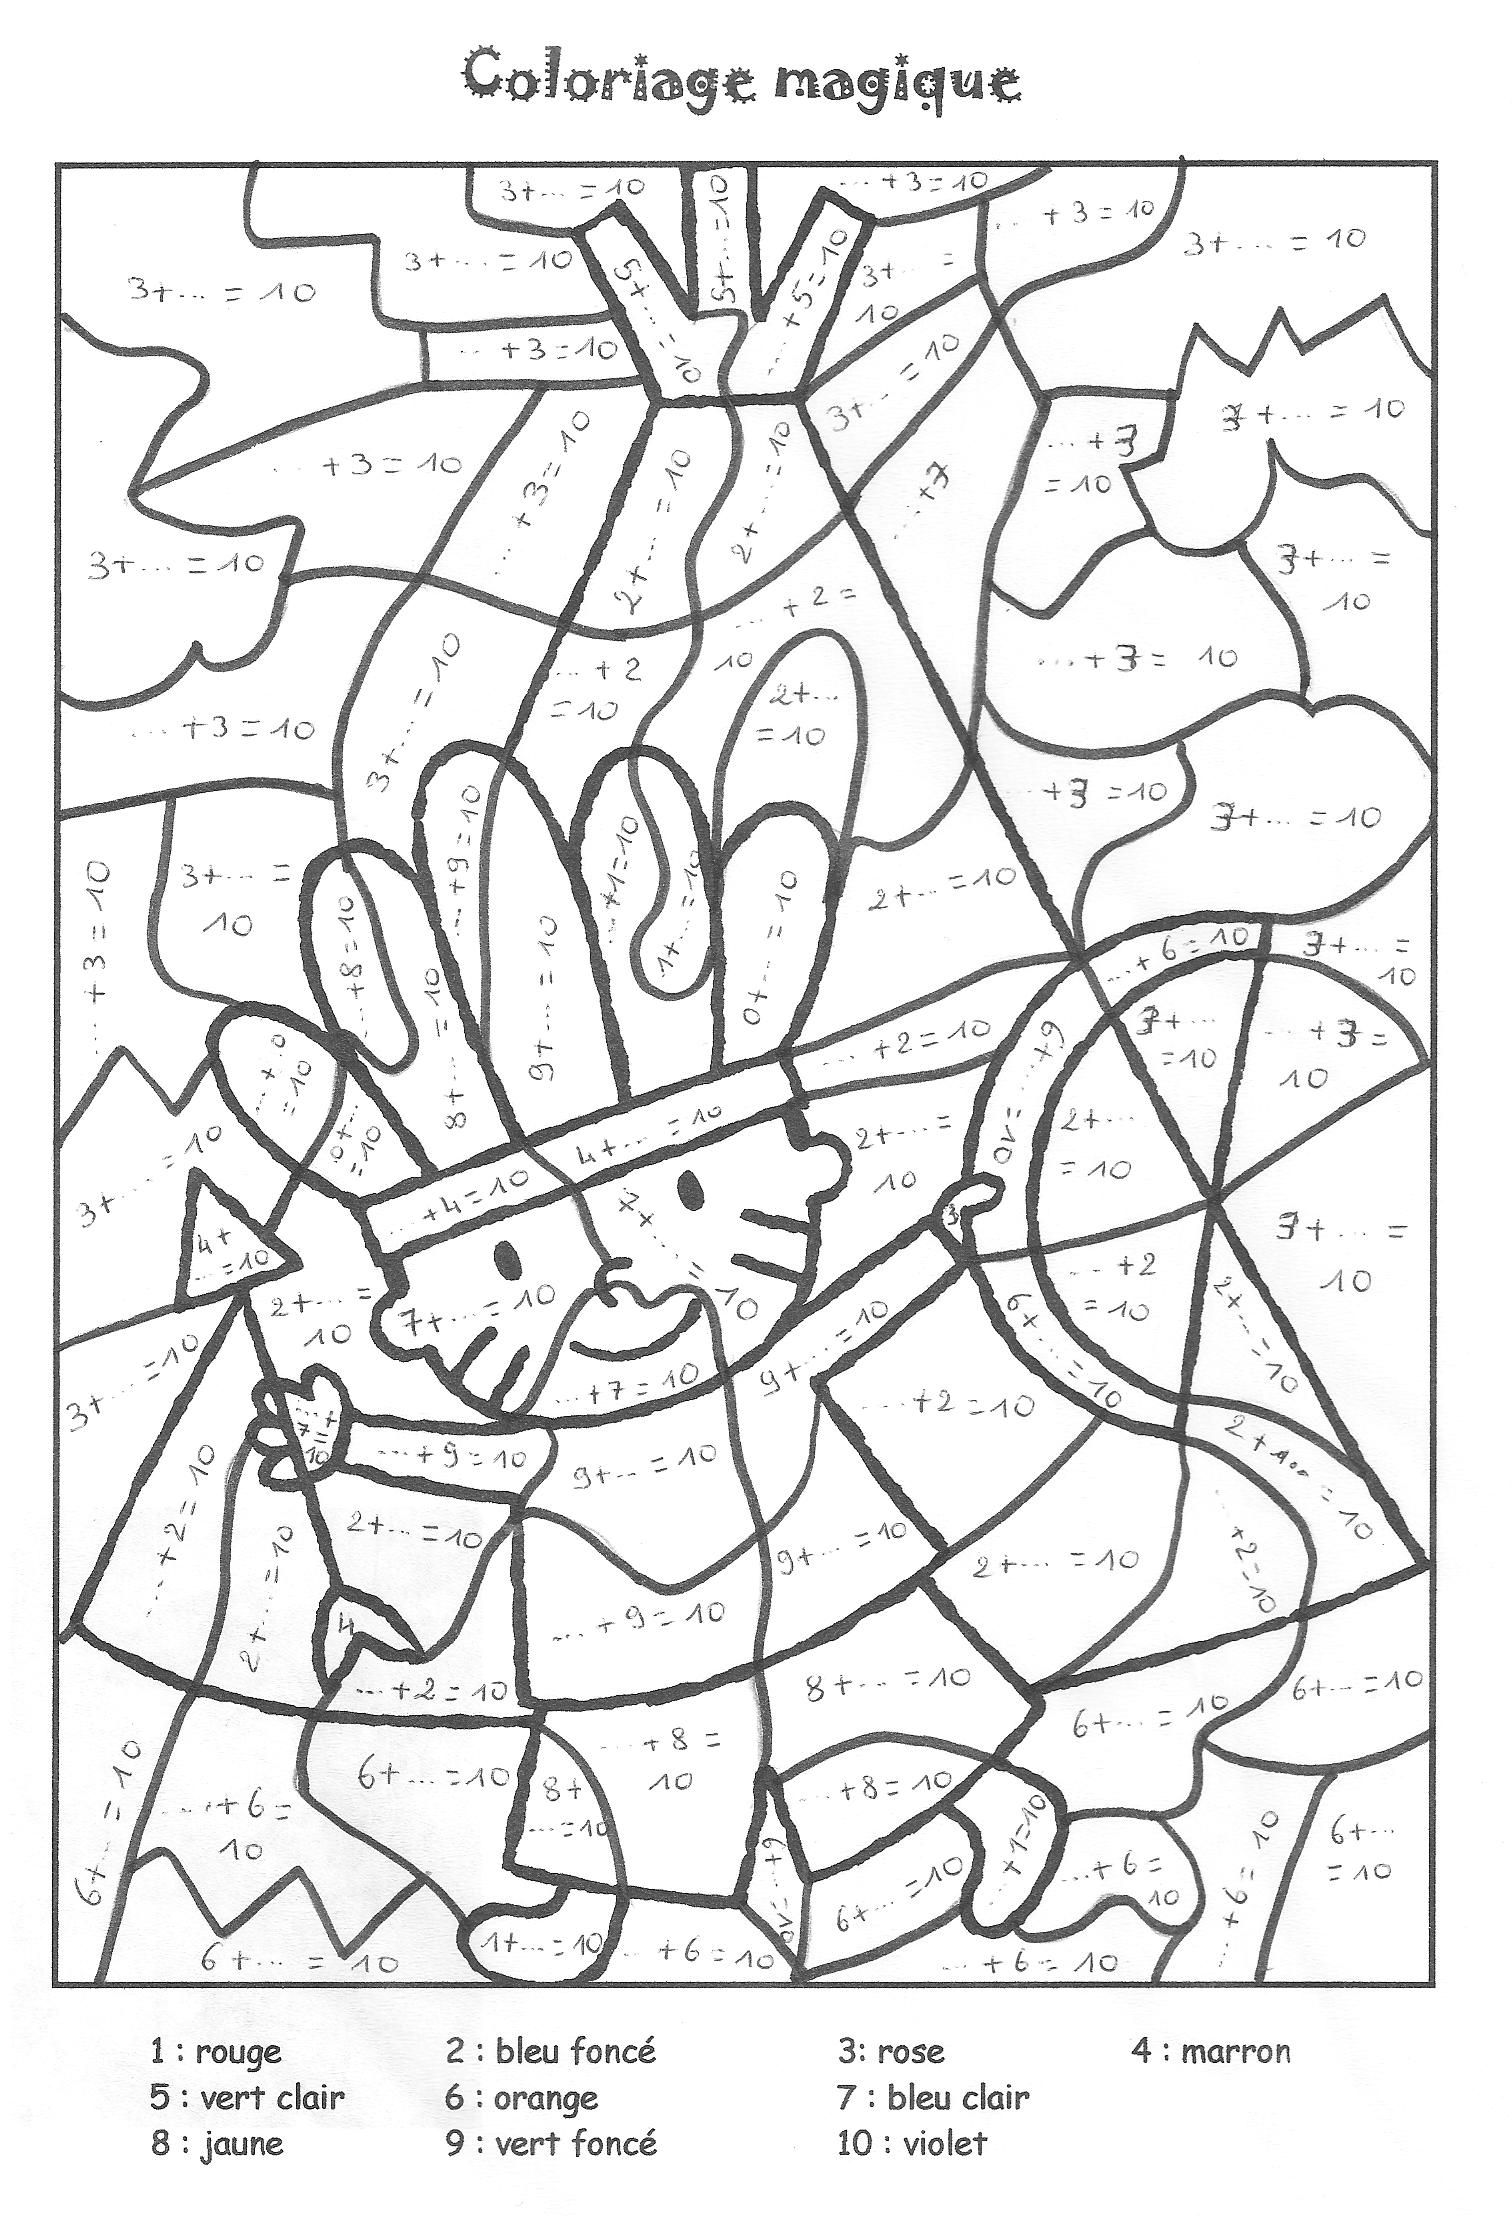 Coloriage complements a 10 1500 free paper dolls at international artist arielle gabriels the - Coloriage magiques ...